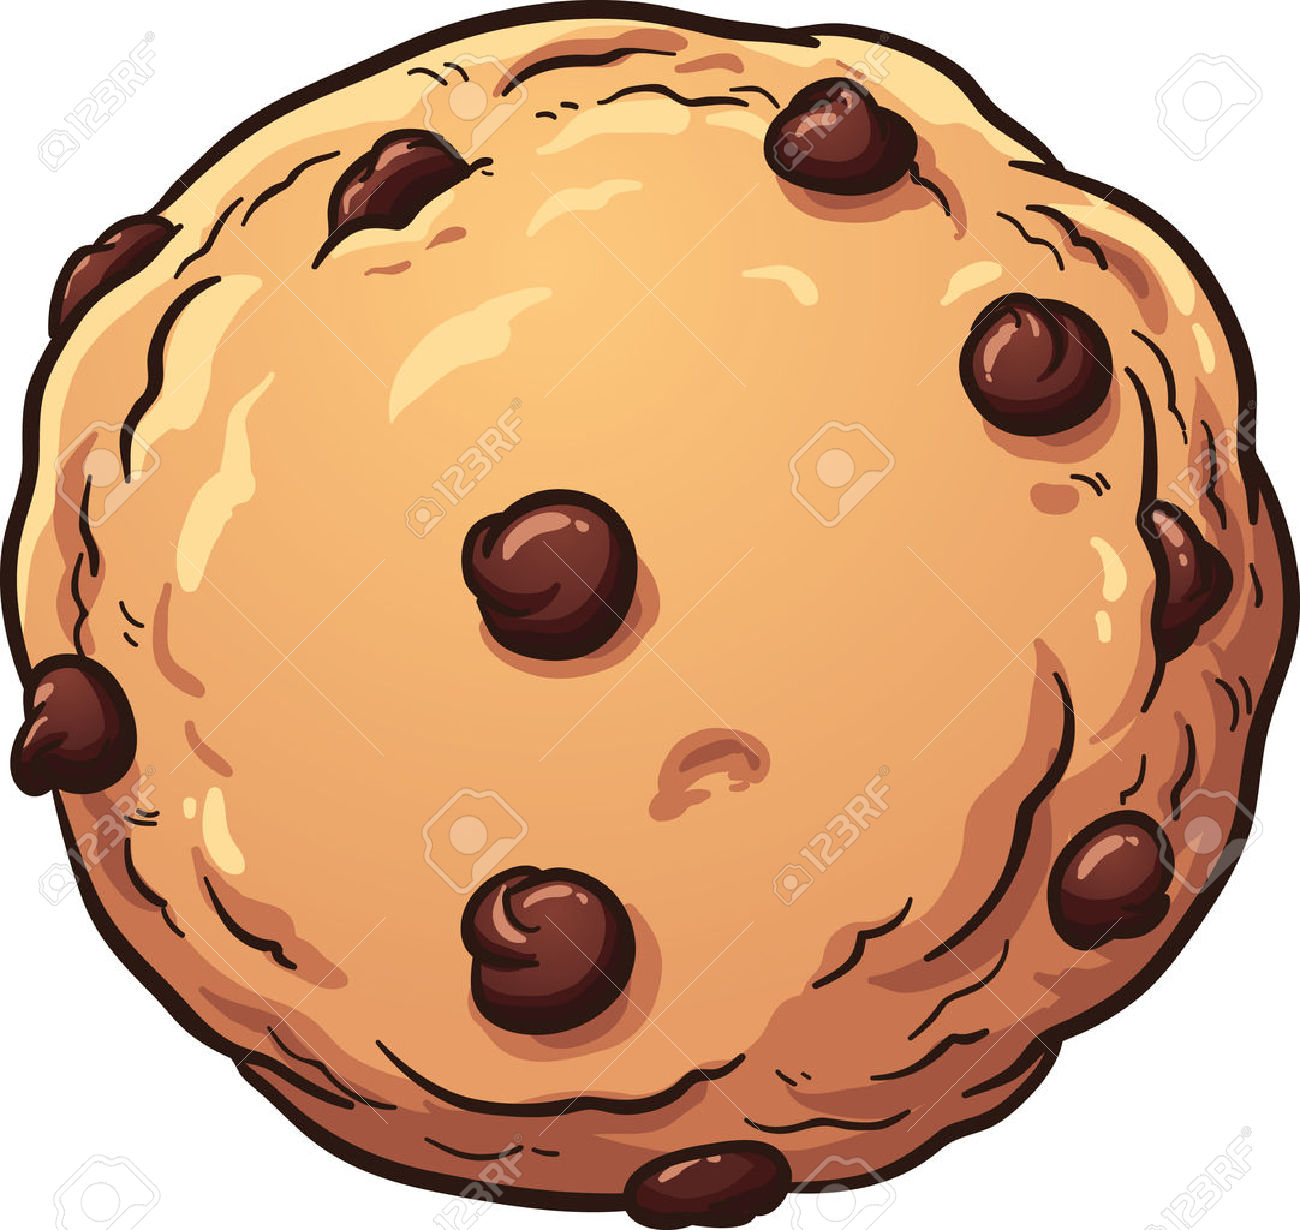 Cookie clipart 7 » Clipart Station.